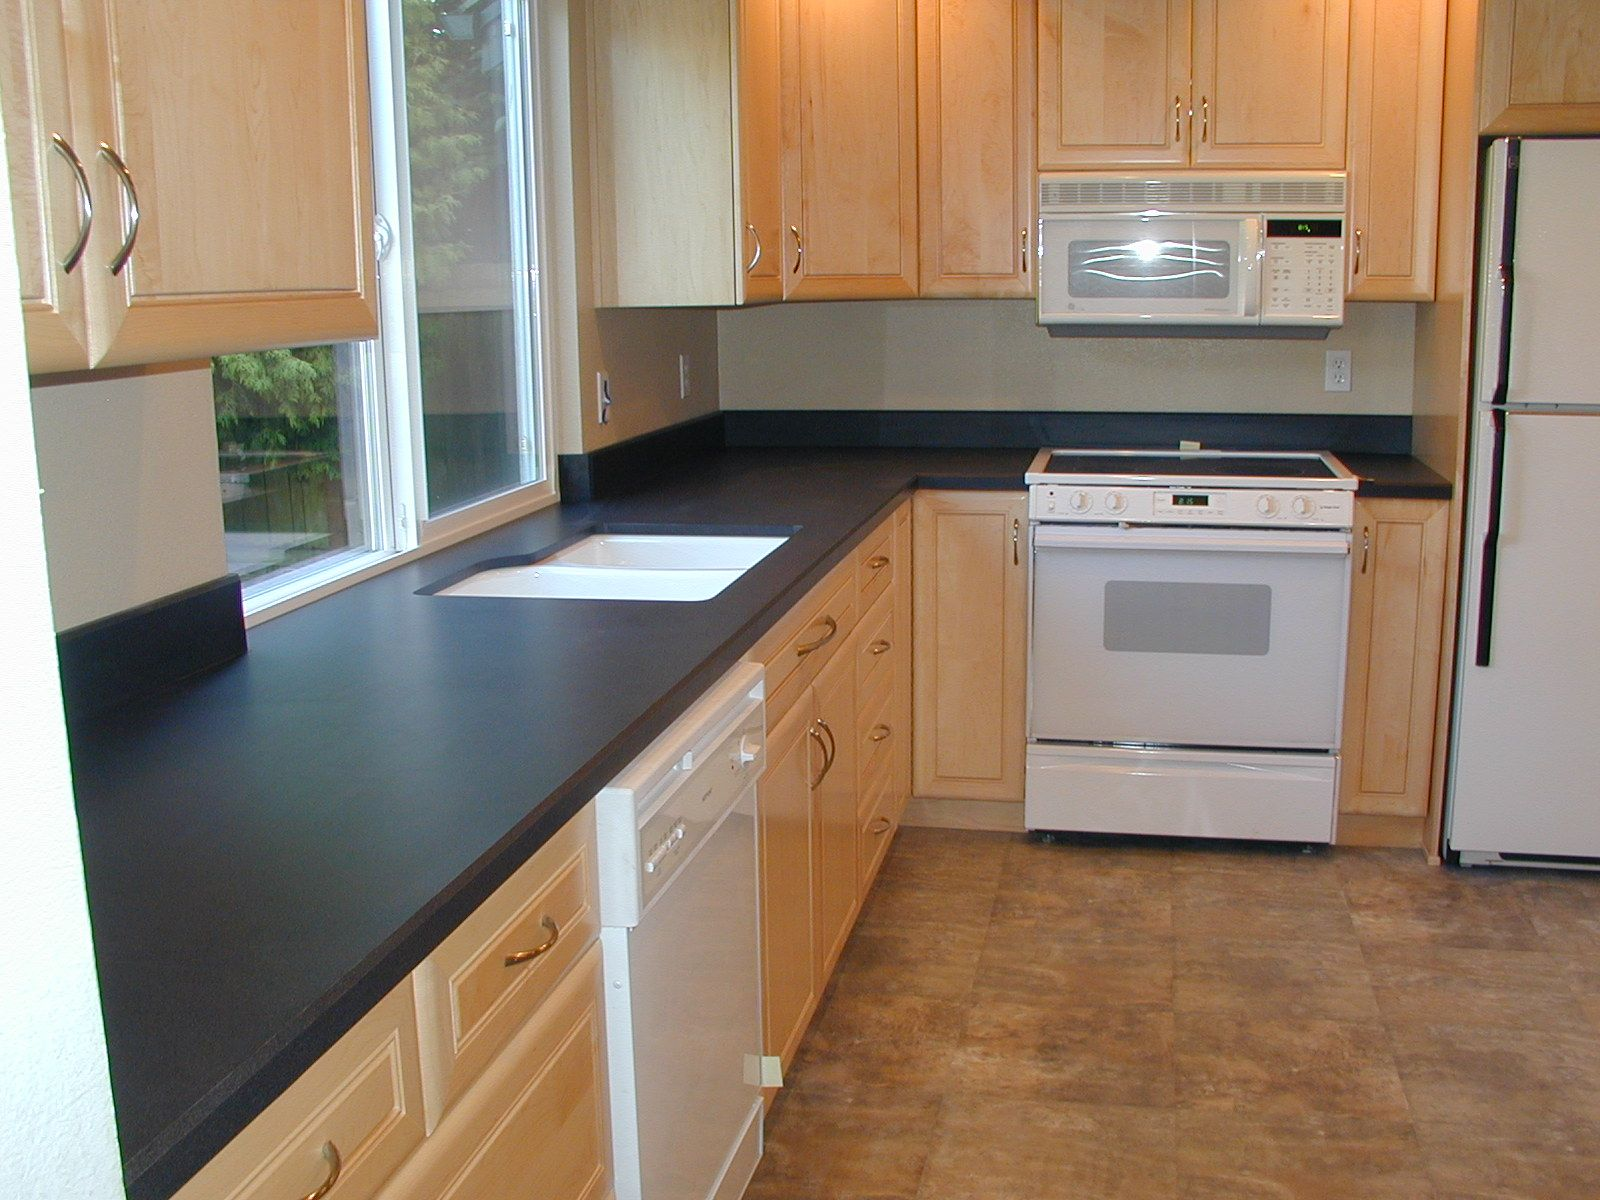 kitchen ideas with dark countertops | countertop design and